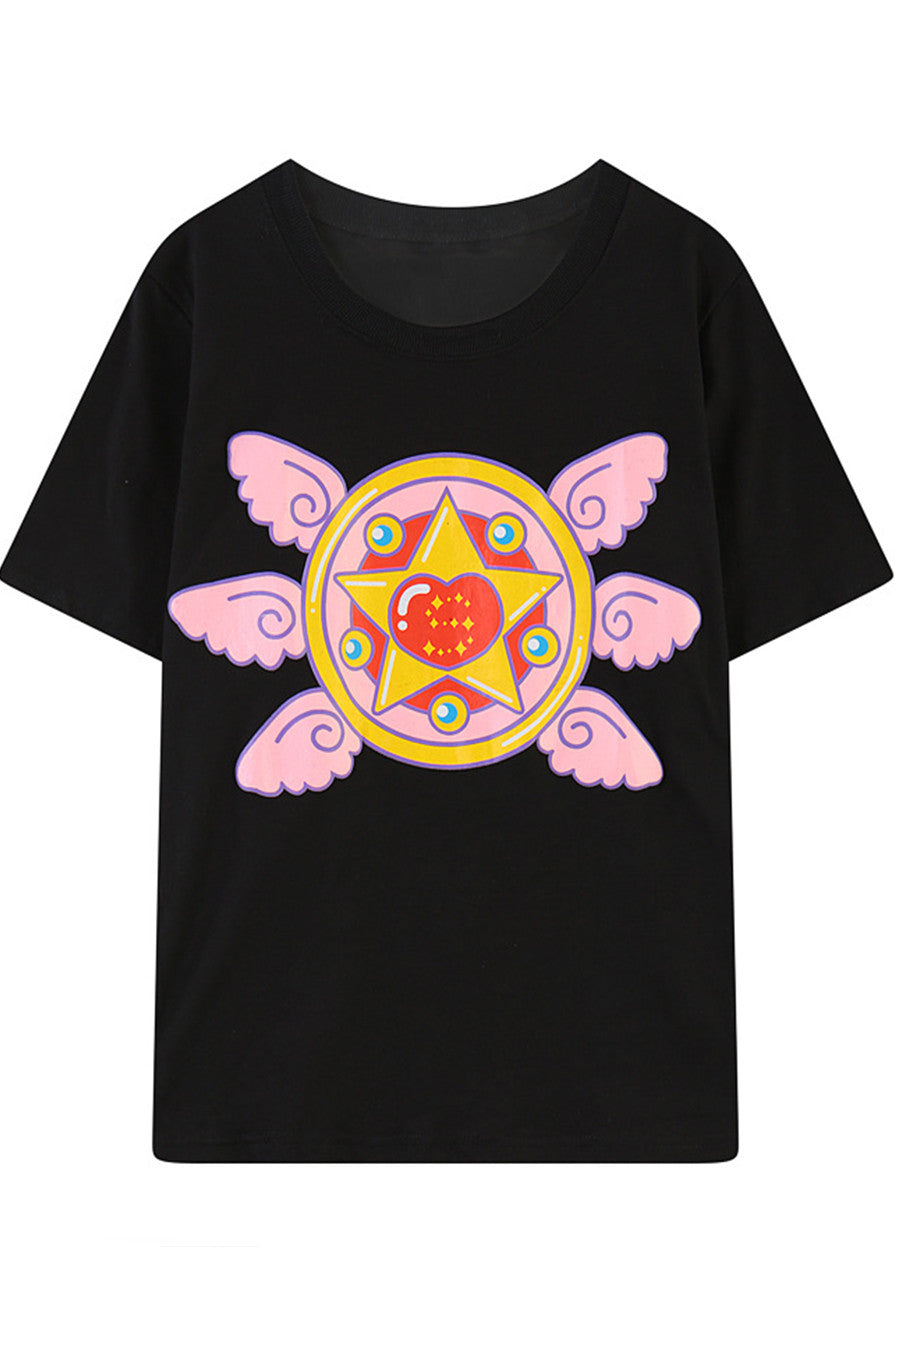 Sailor Moon Wings T-shirt 💗